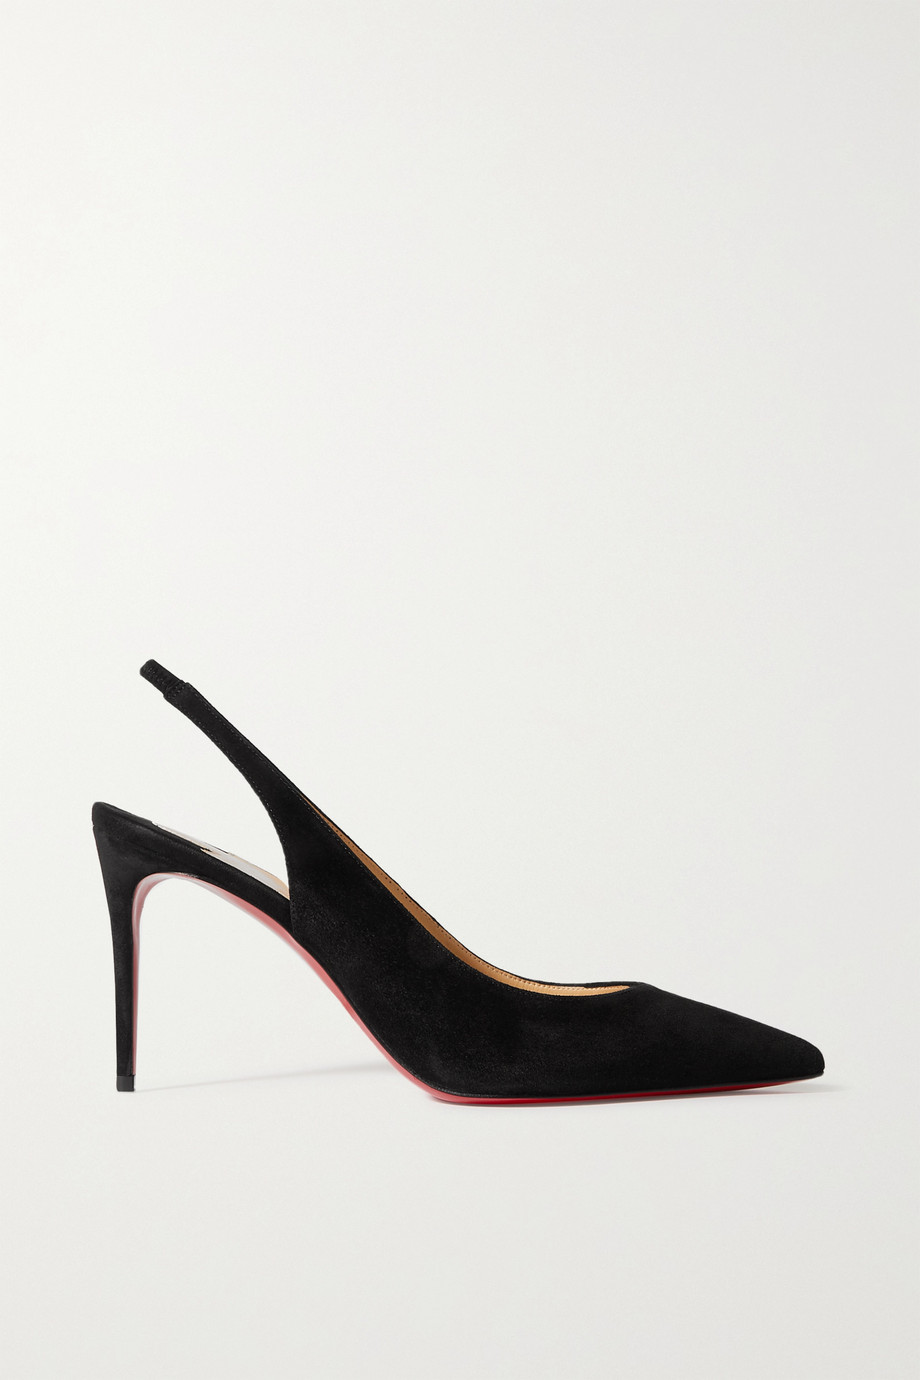 CHRISTIAN LOUBOUTIN Kate Sling 85 suede pumps